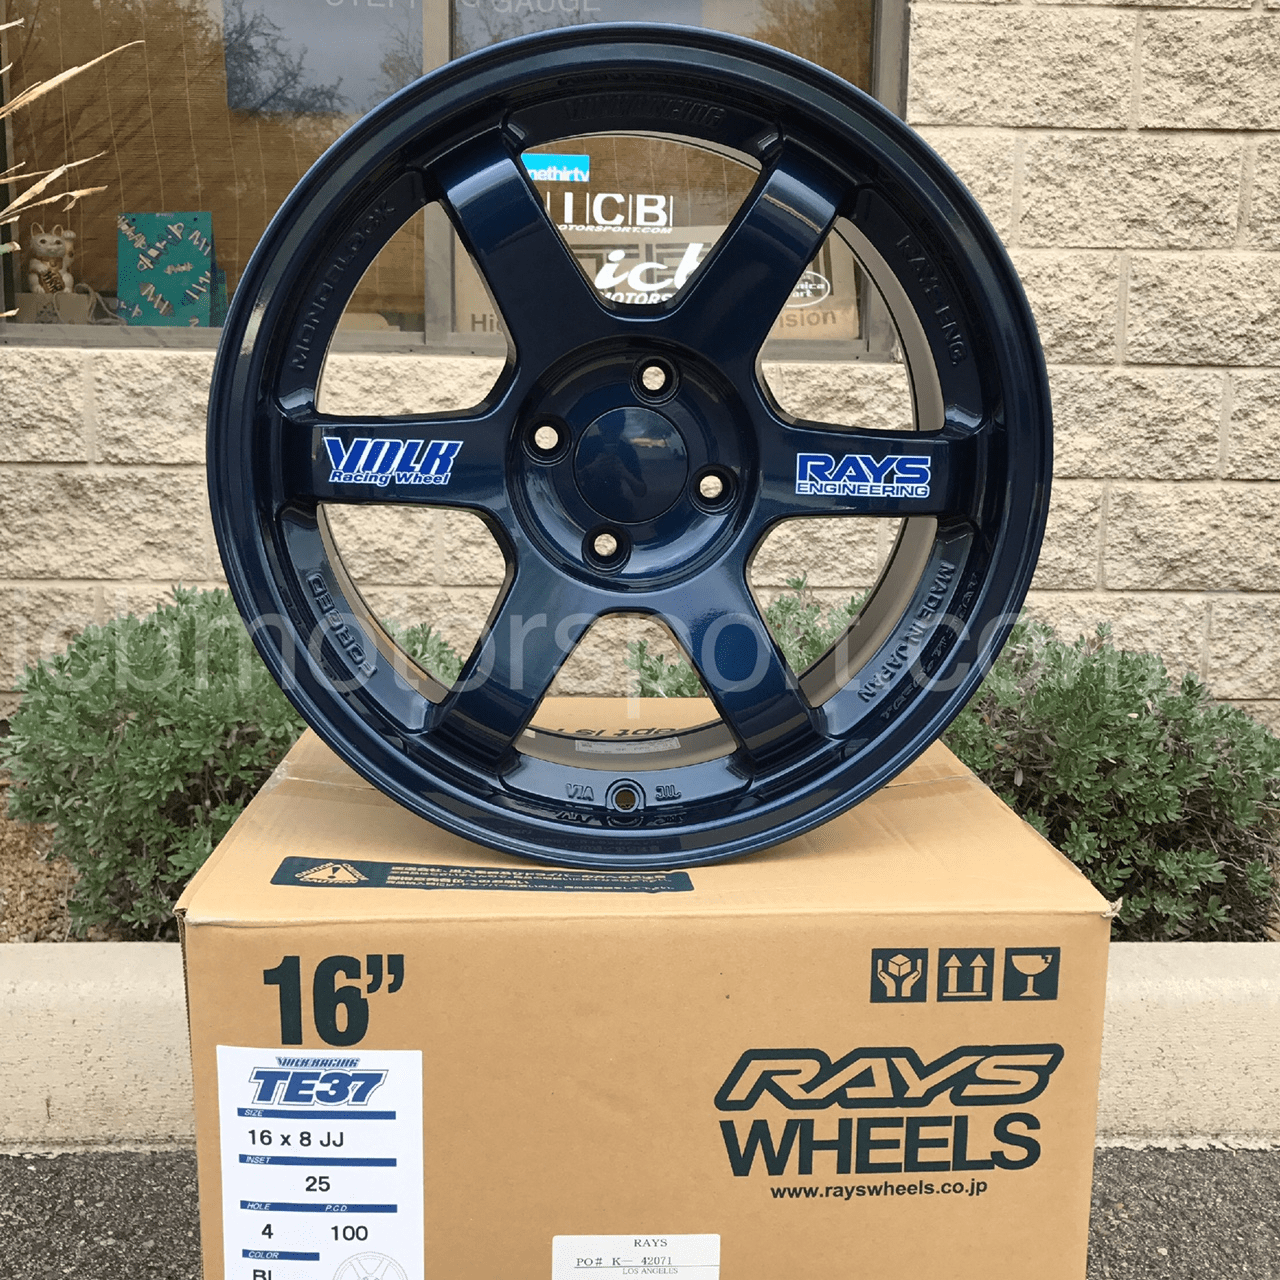 Rays Volk Racing TE37 Wheels 16X8 4X100 +25 Offset Mag Blue Concave Face Sold!